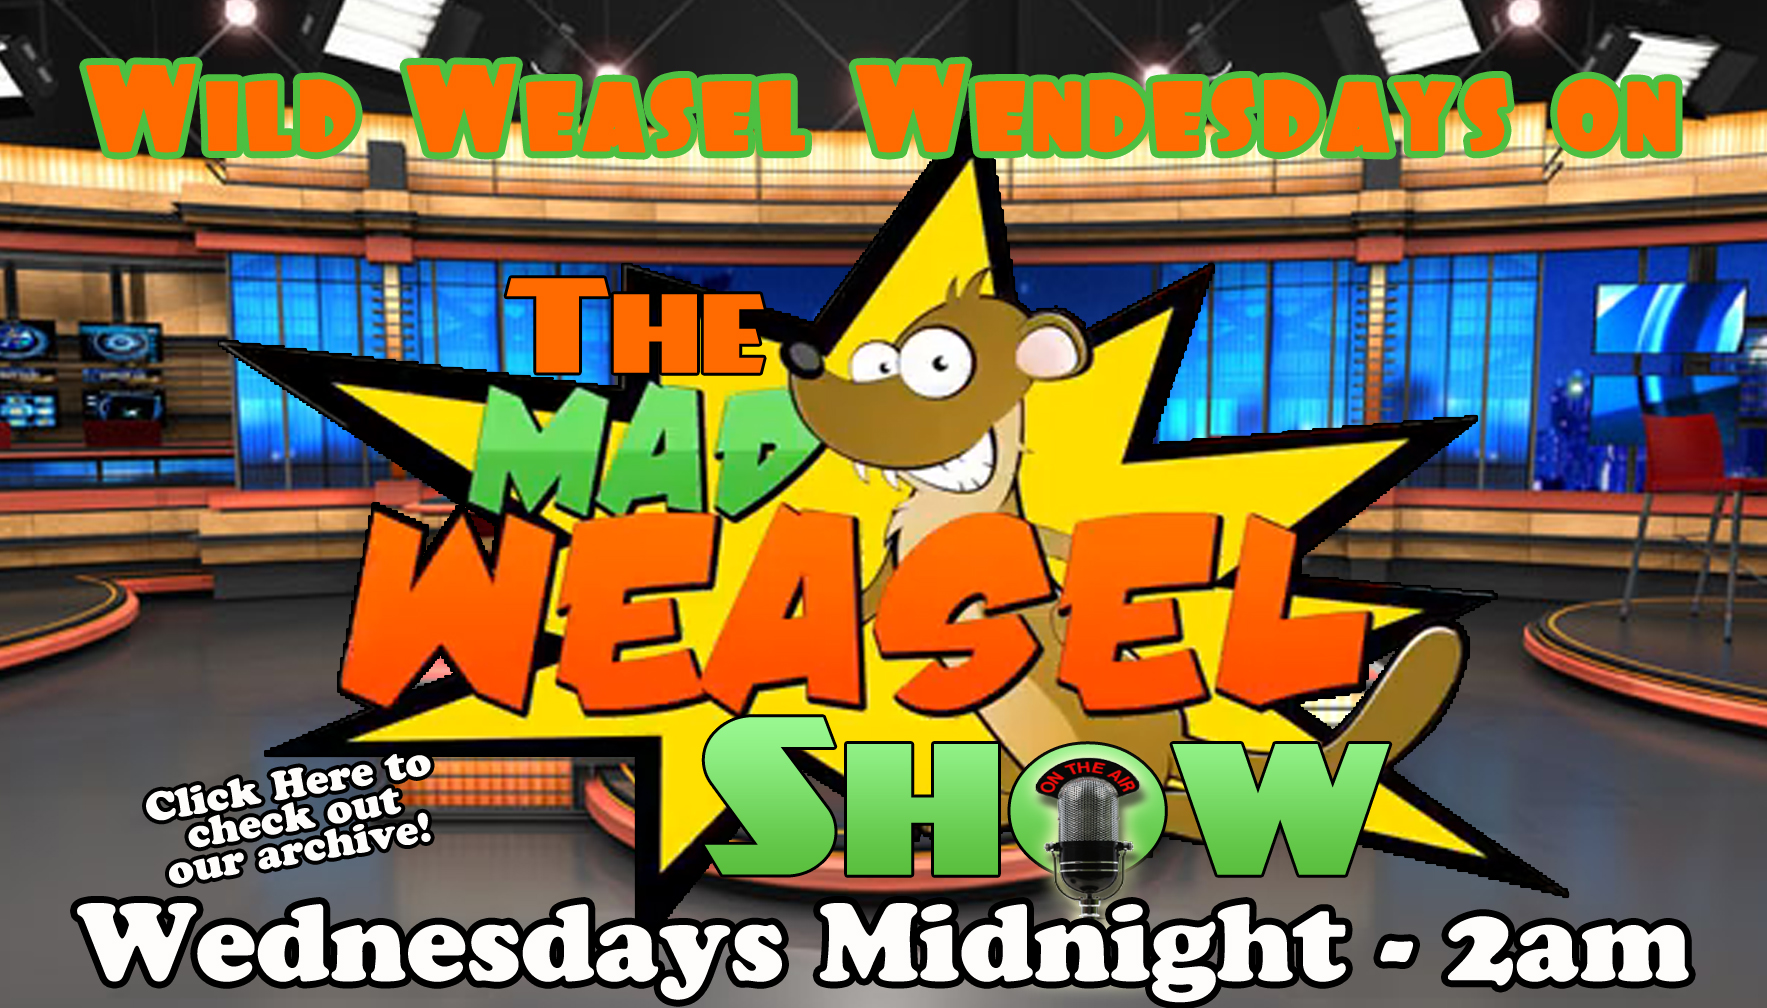 Mad Weasel Show